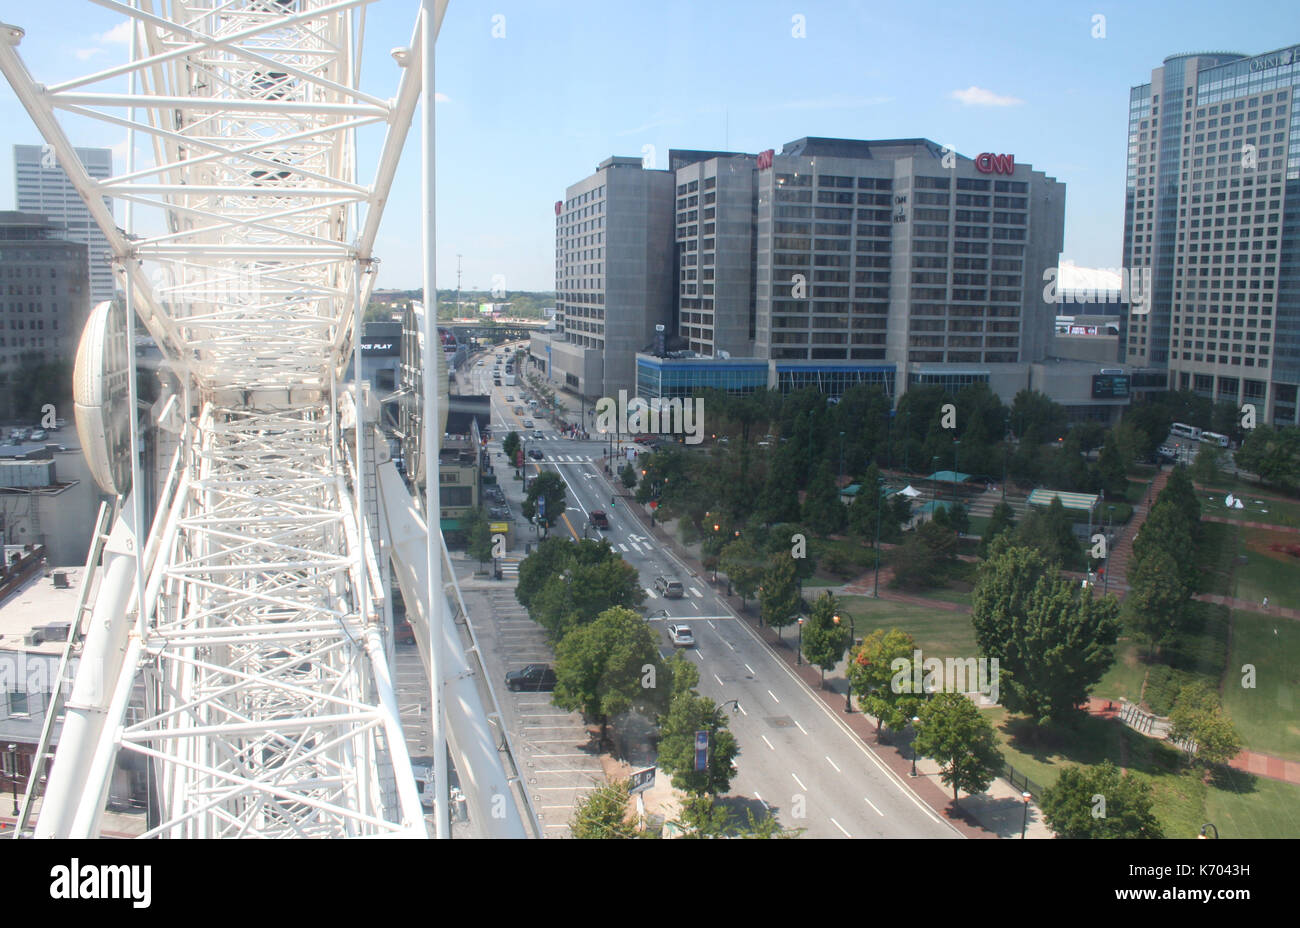 View of downtown Atlanta, Georgia, from inside the Skyview Ferris Wheel on August 28, 2014 - Stock Image